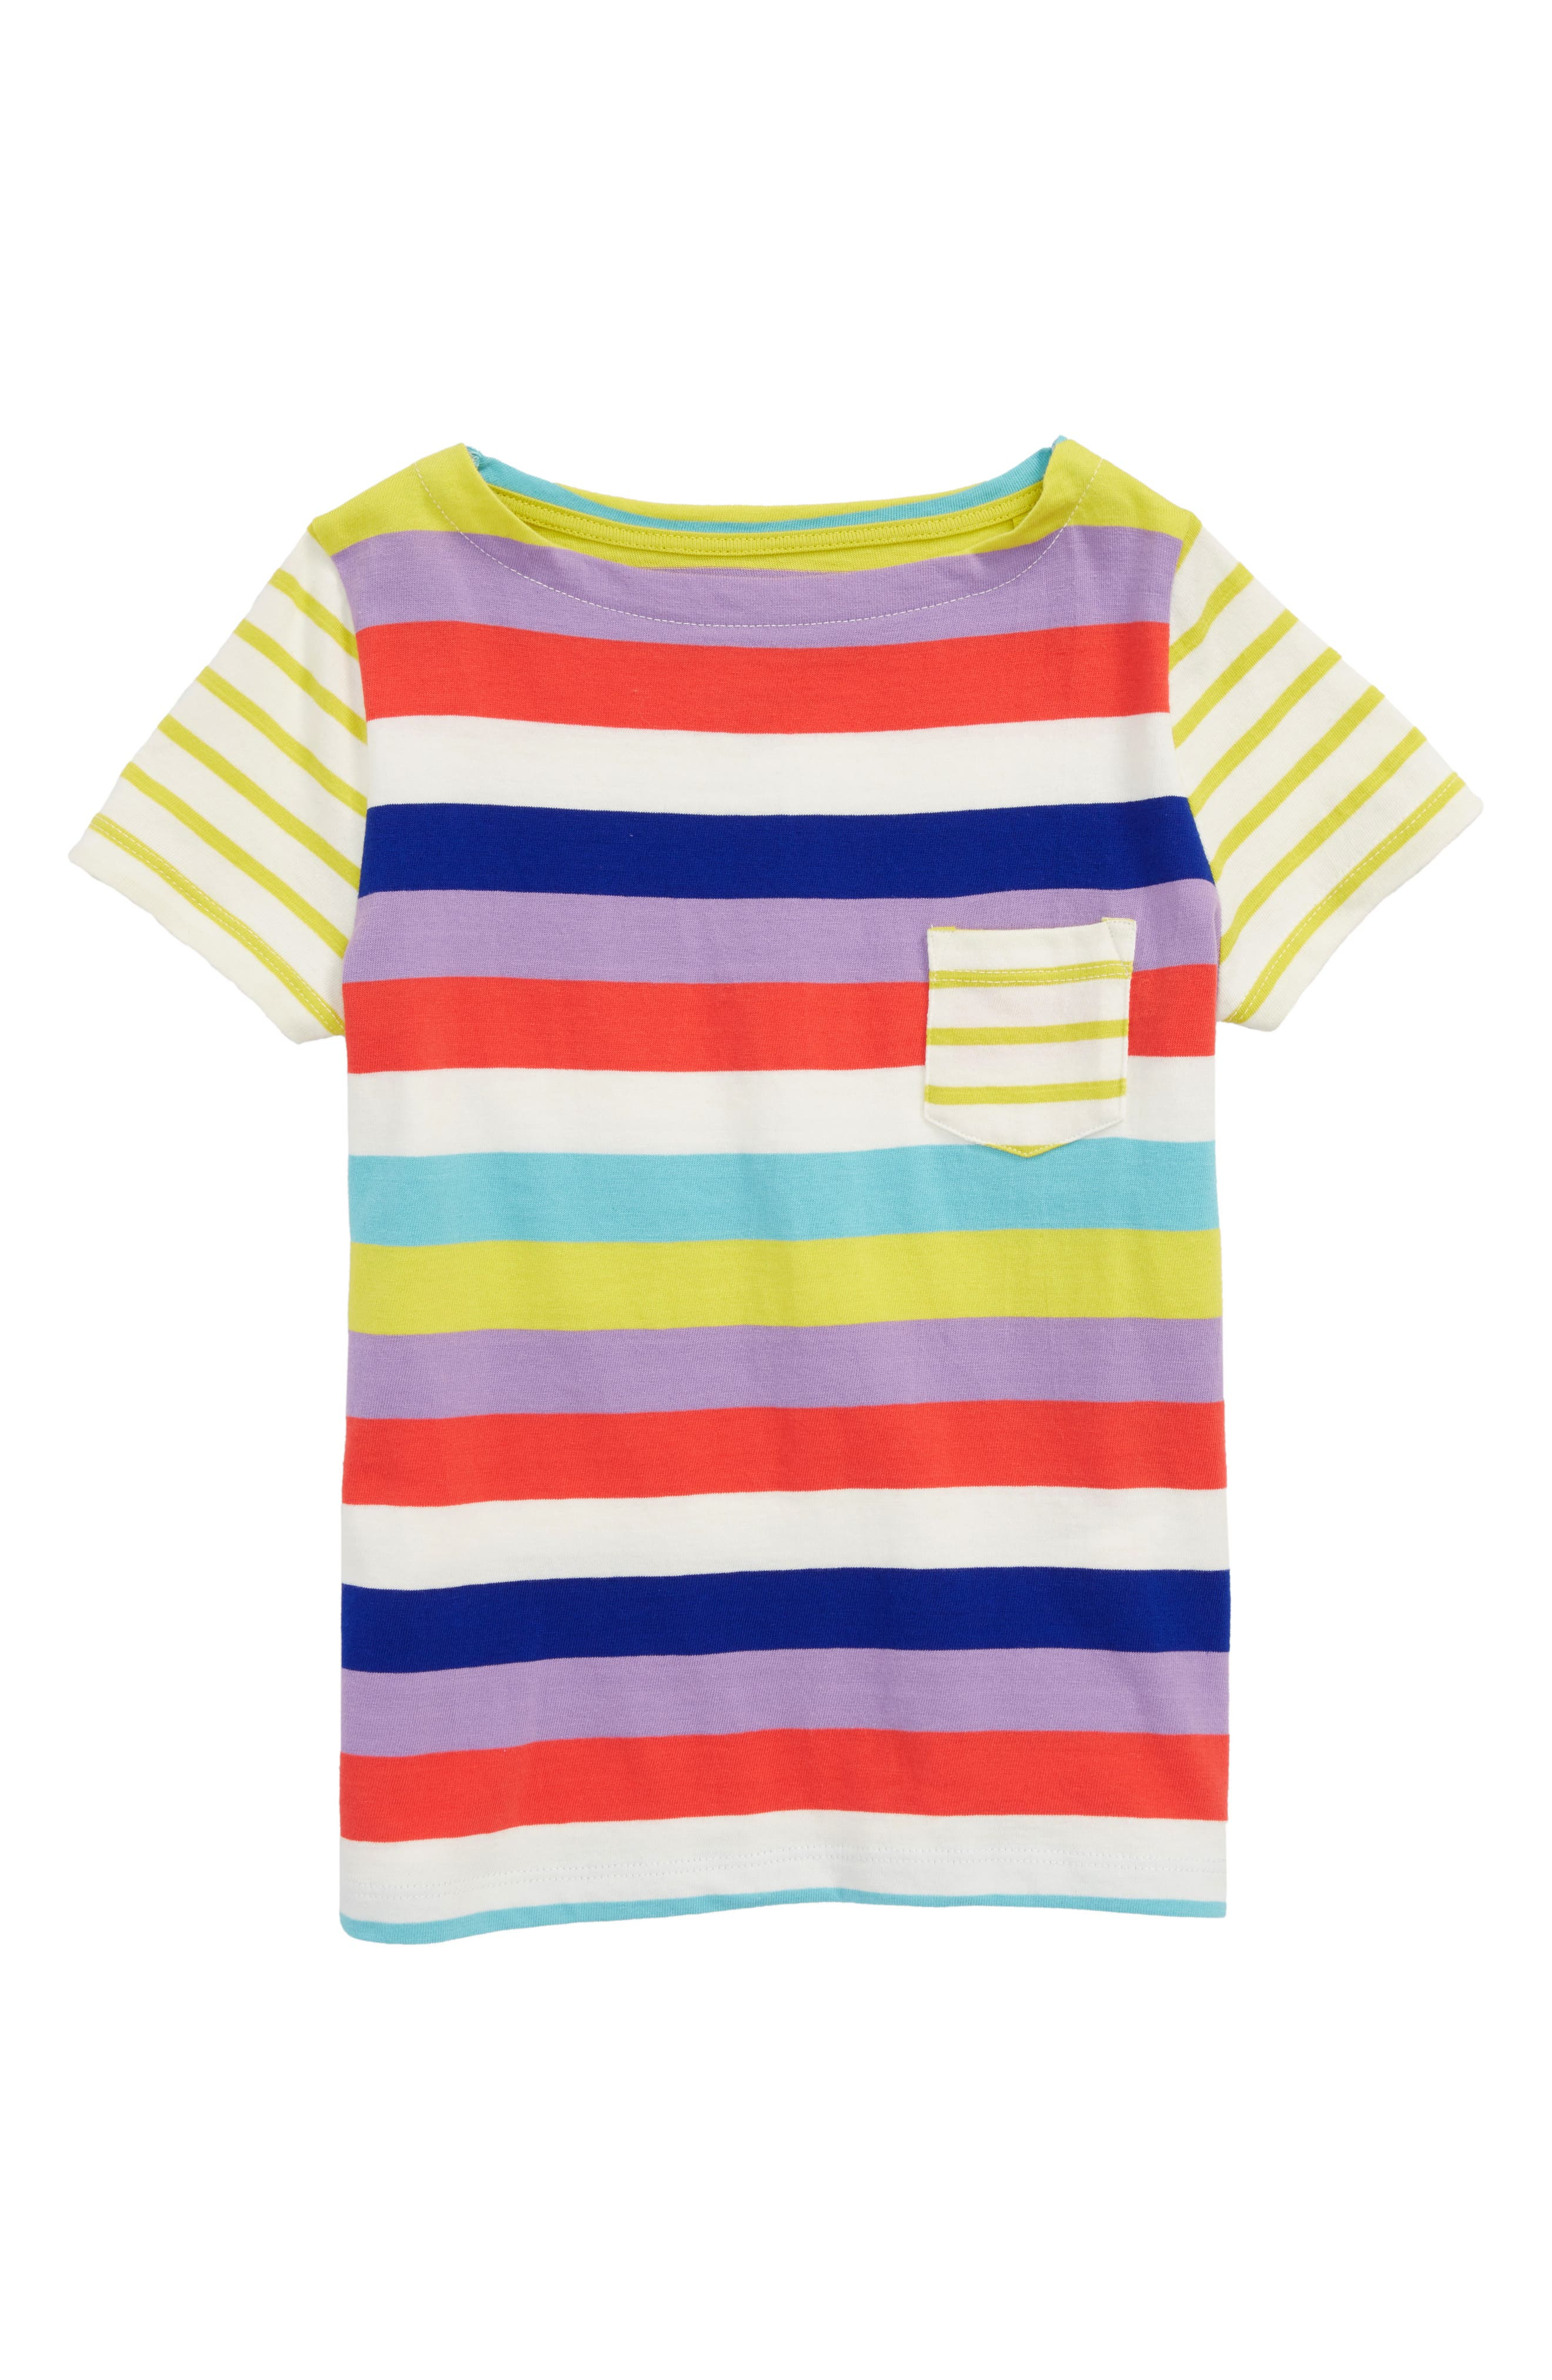 Summer Hotchpotch Tee,                         Main,                         color, Candy Stripe Str